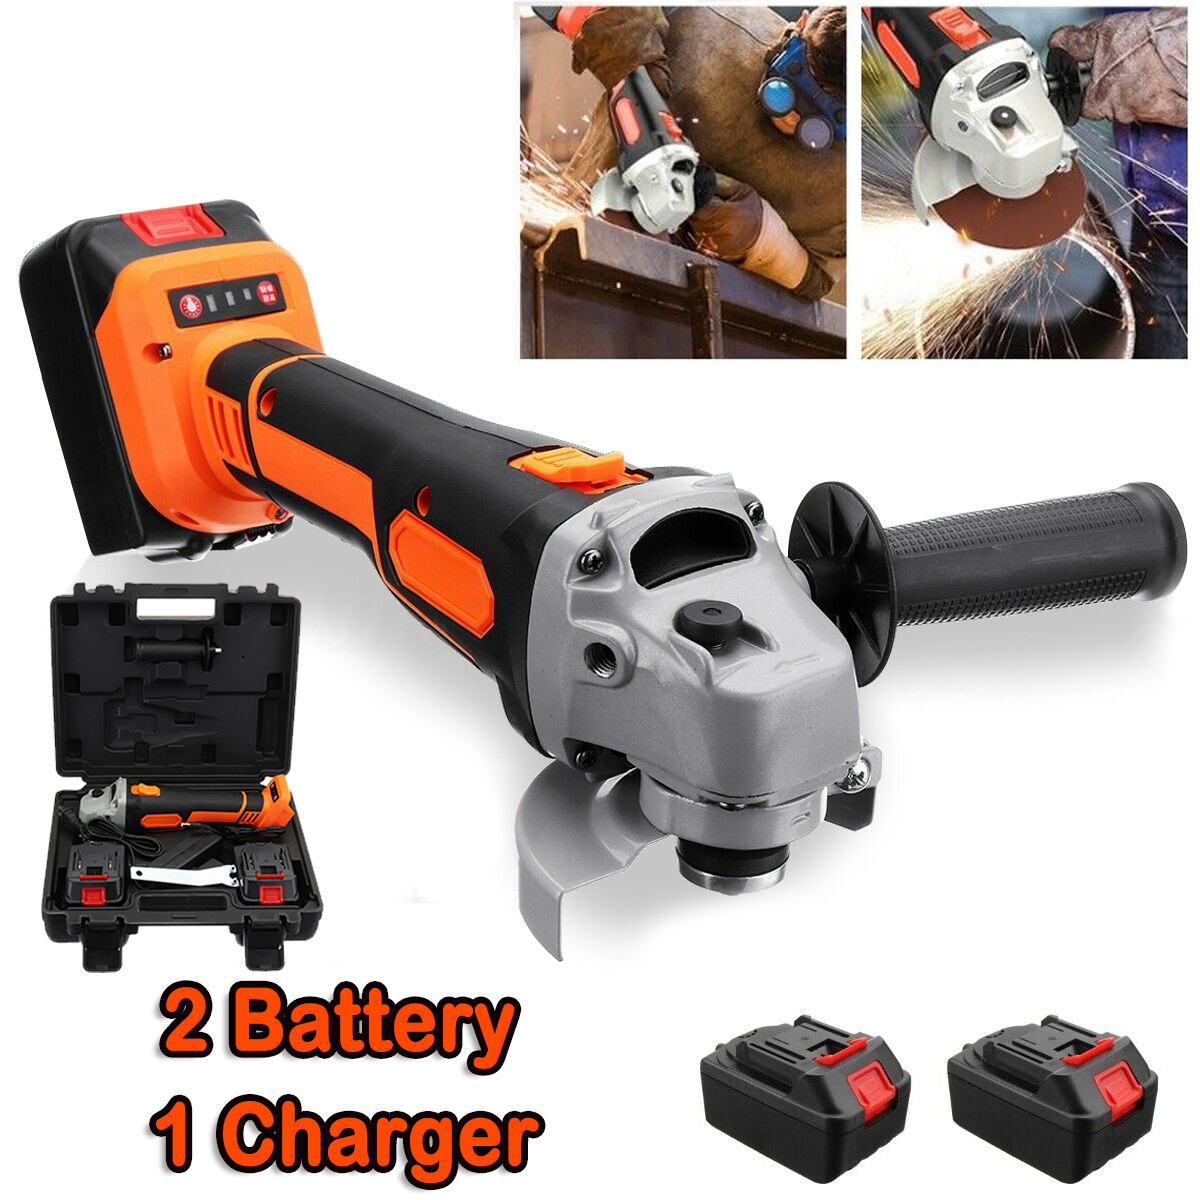 Cordless Brushless Electric Angle Grinder Grinding Cutting Tool Battery /&Toolkit